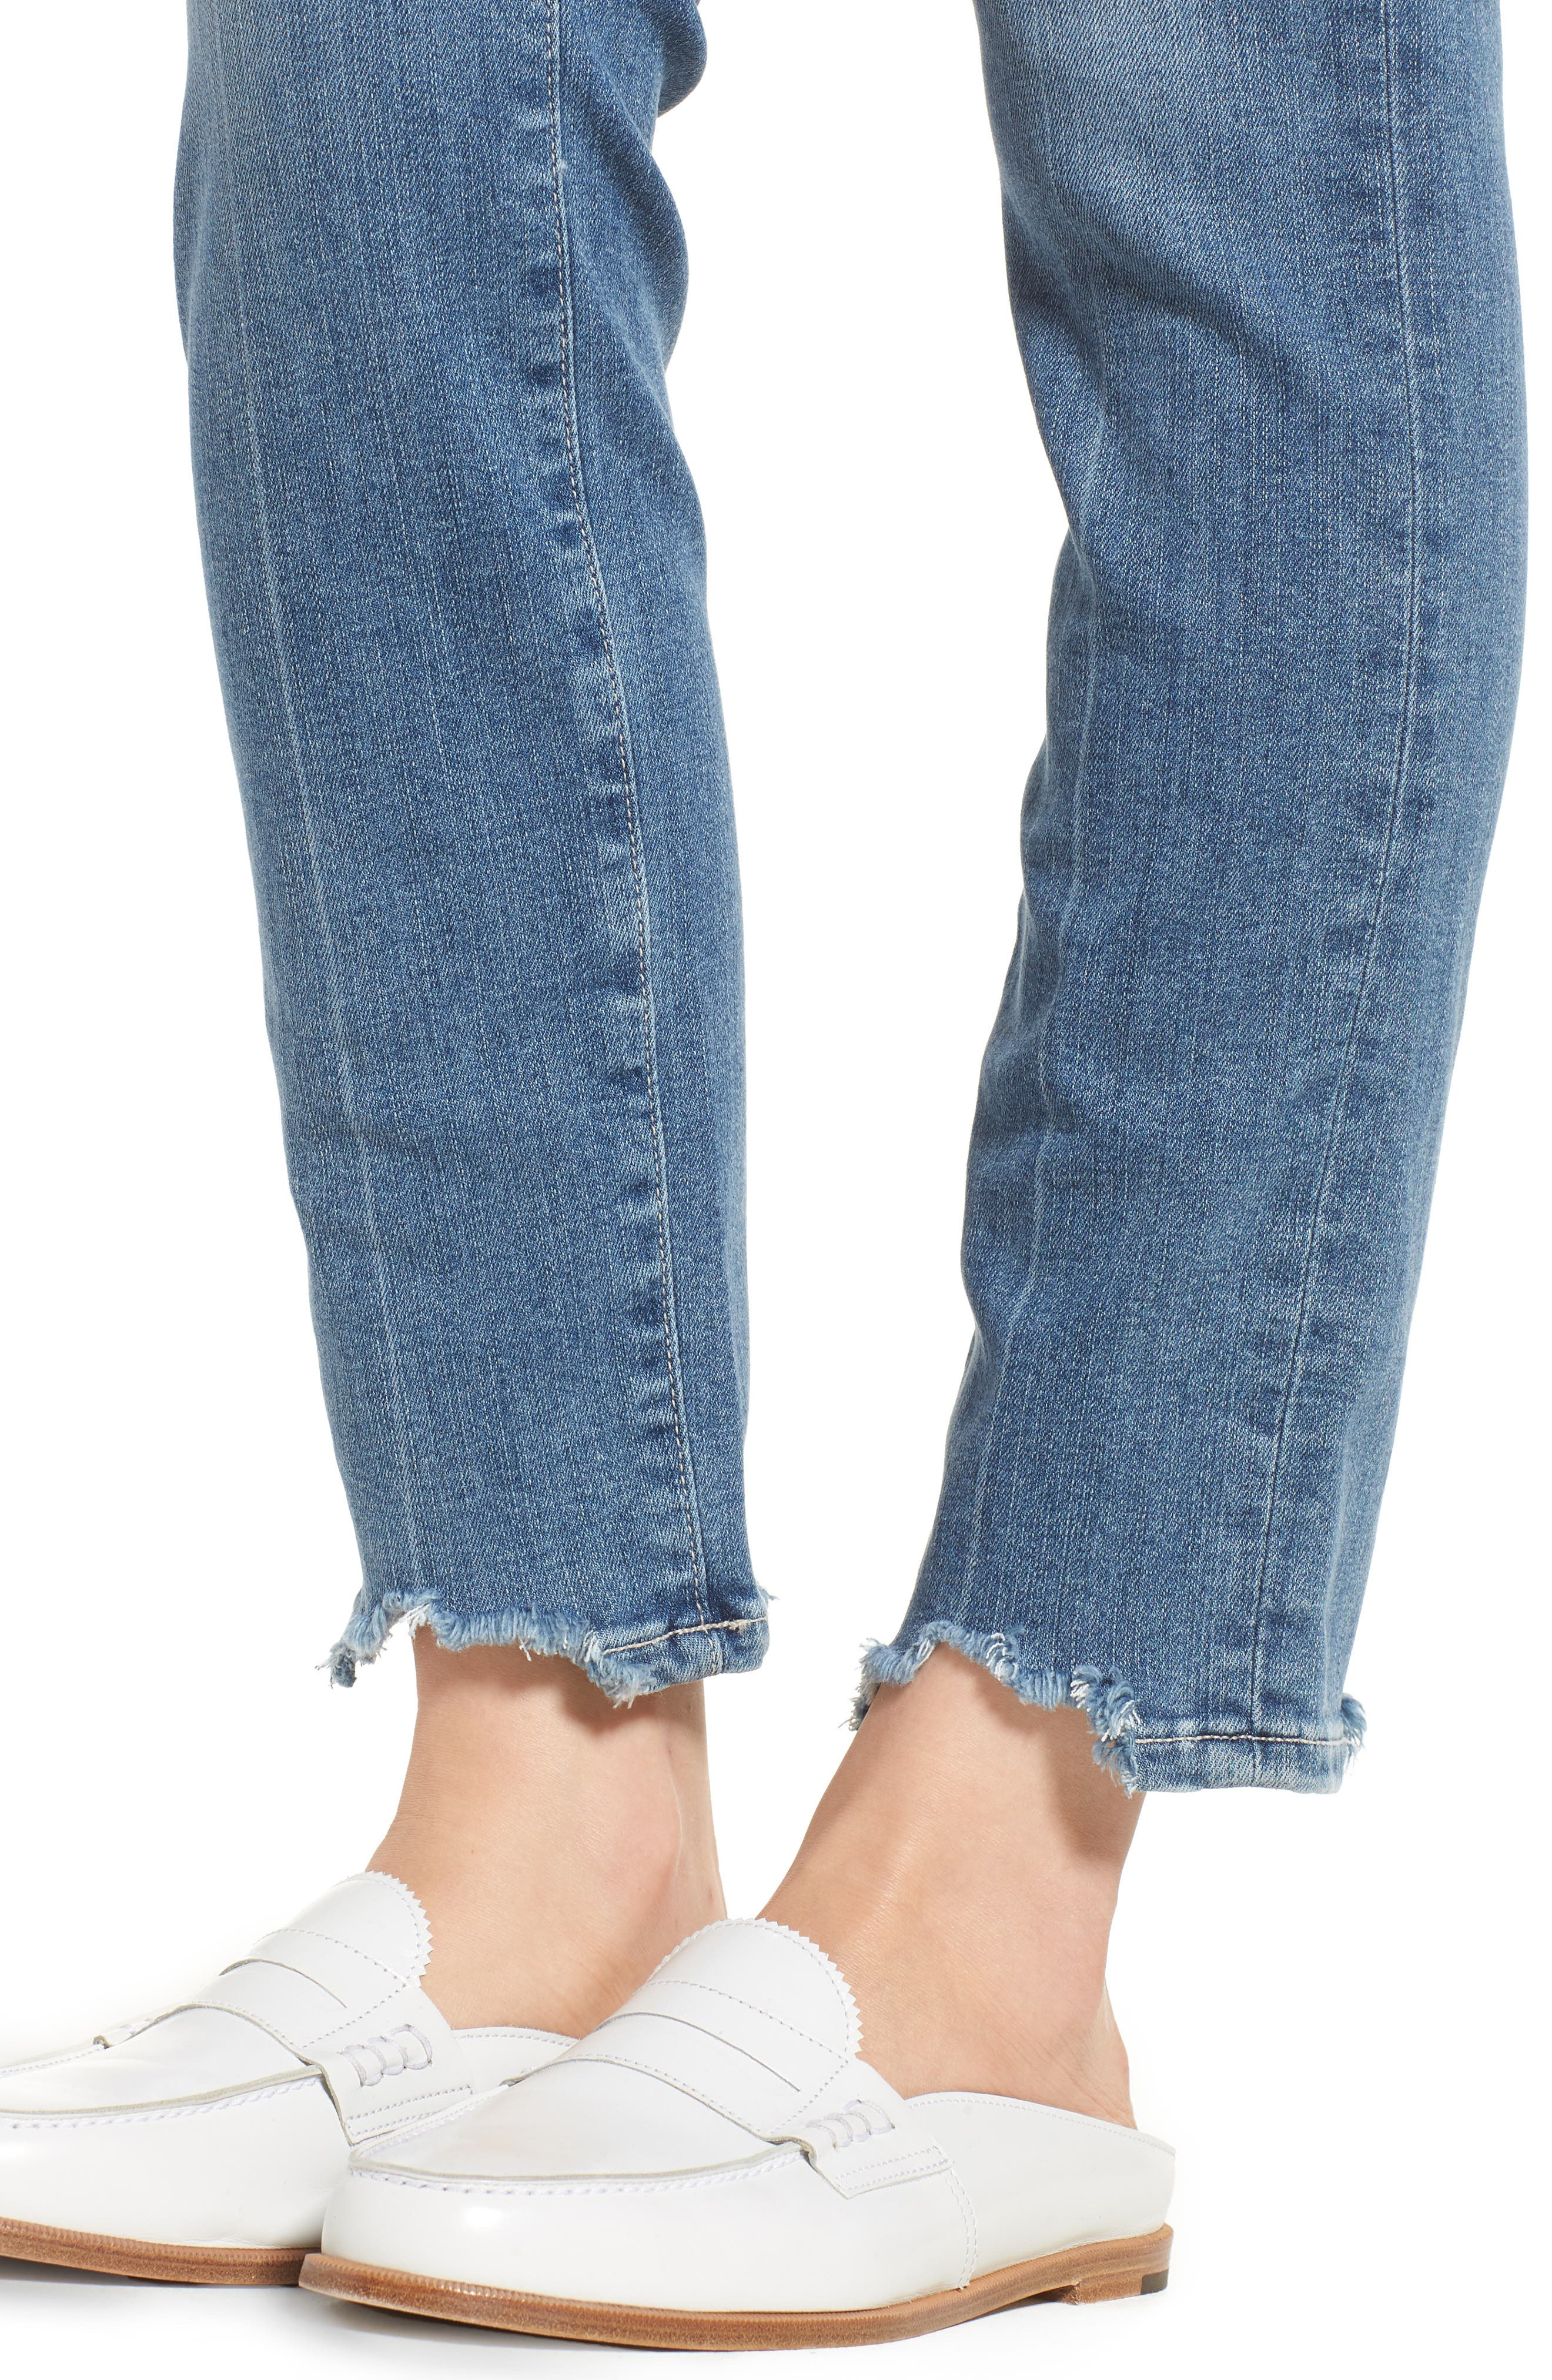 Transcend Vintage - Hoxton High Waist Ankle Skinny Jeans,                             Alternate thumbnail 7, color,                             Zahara